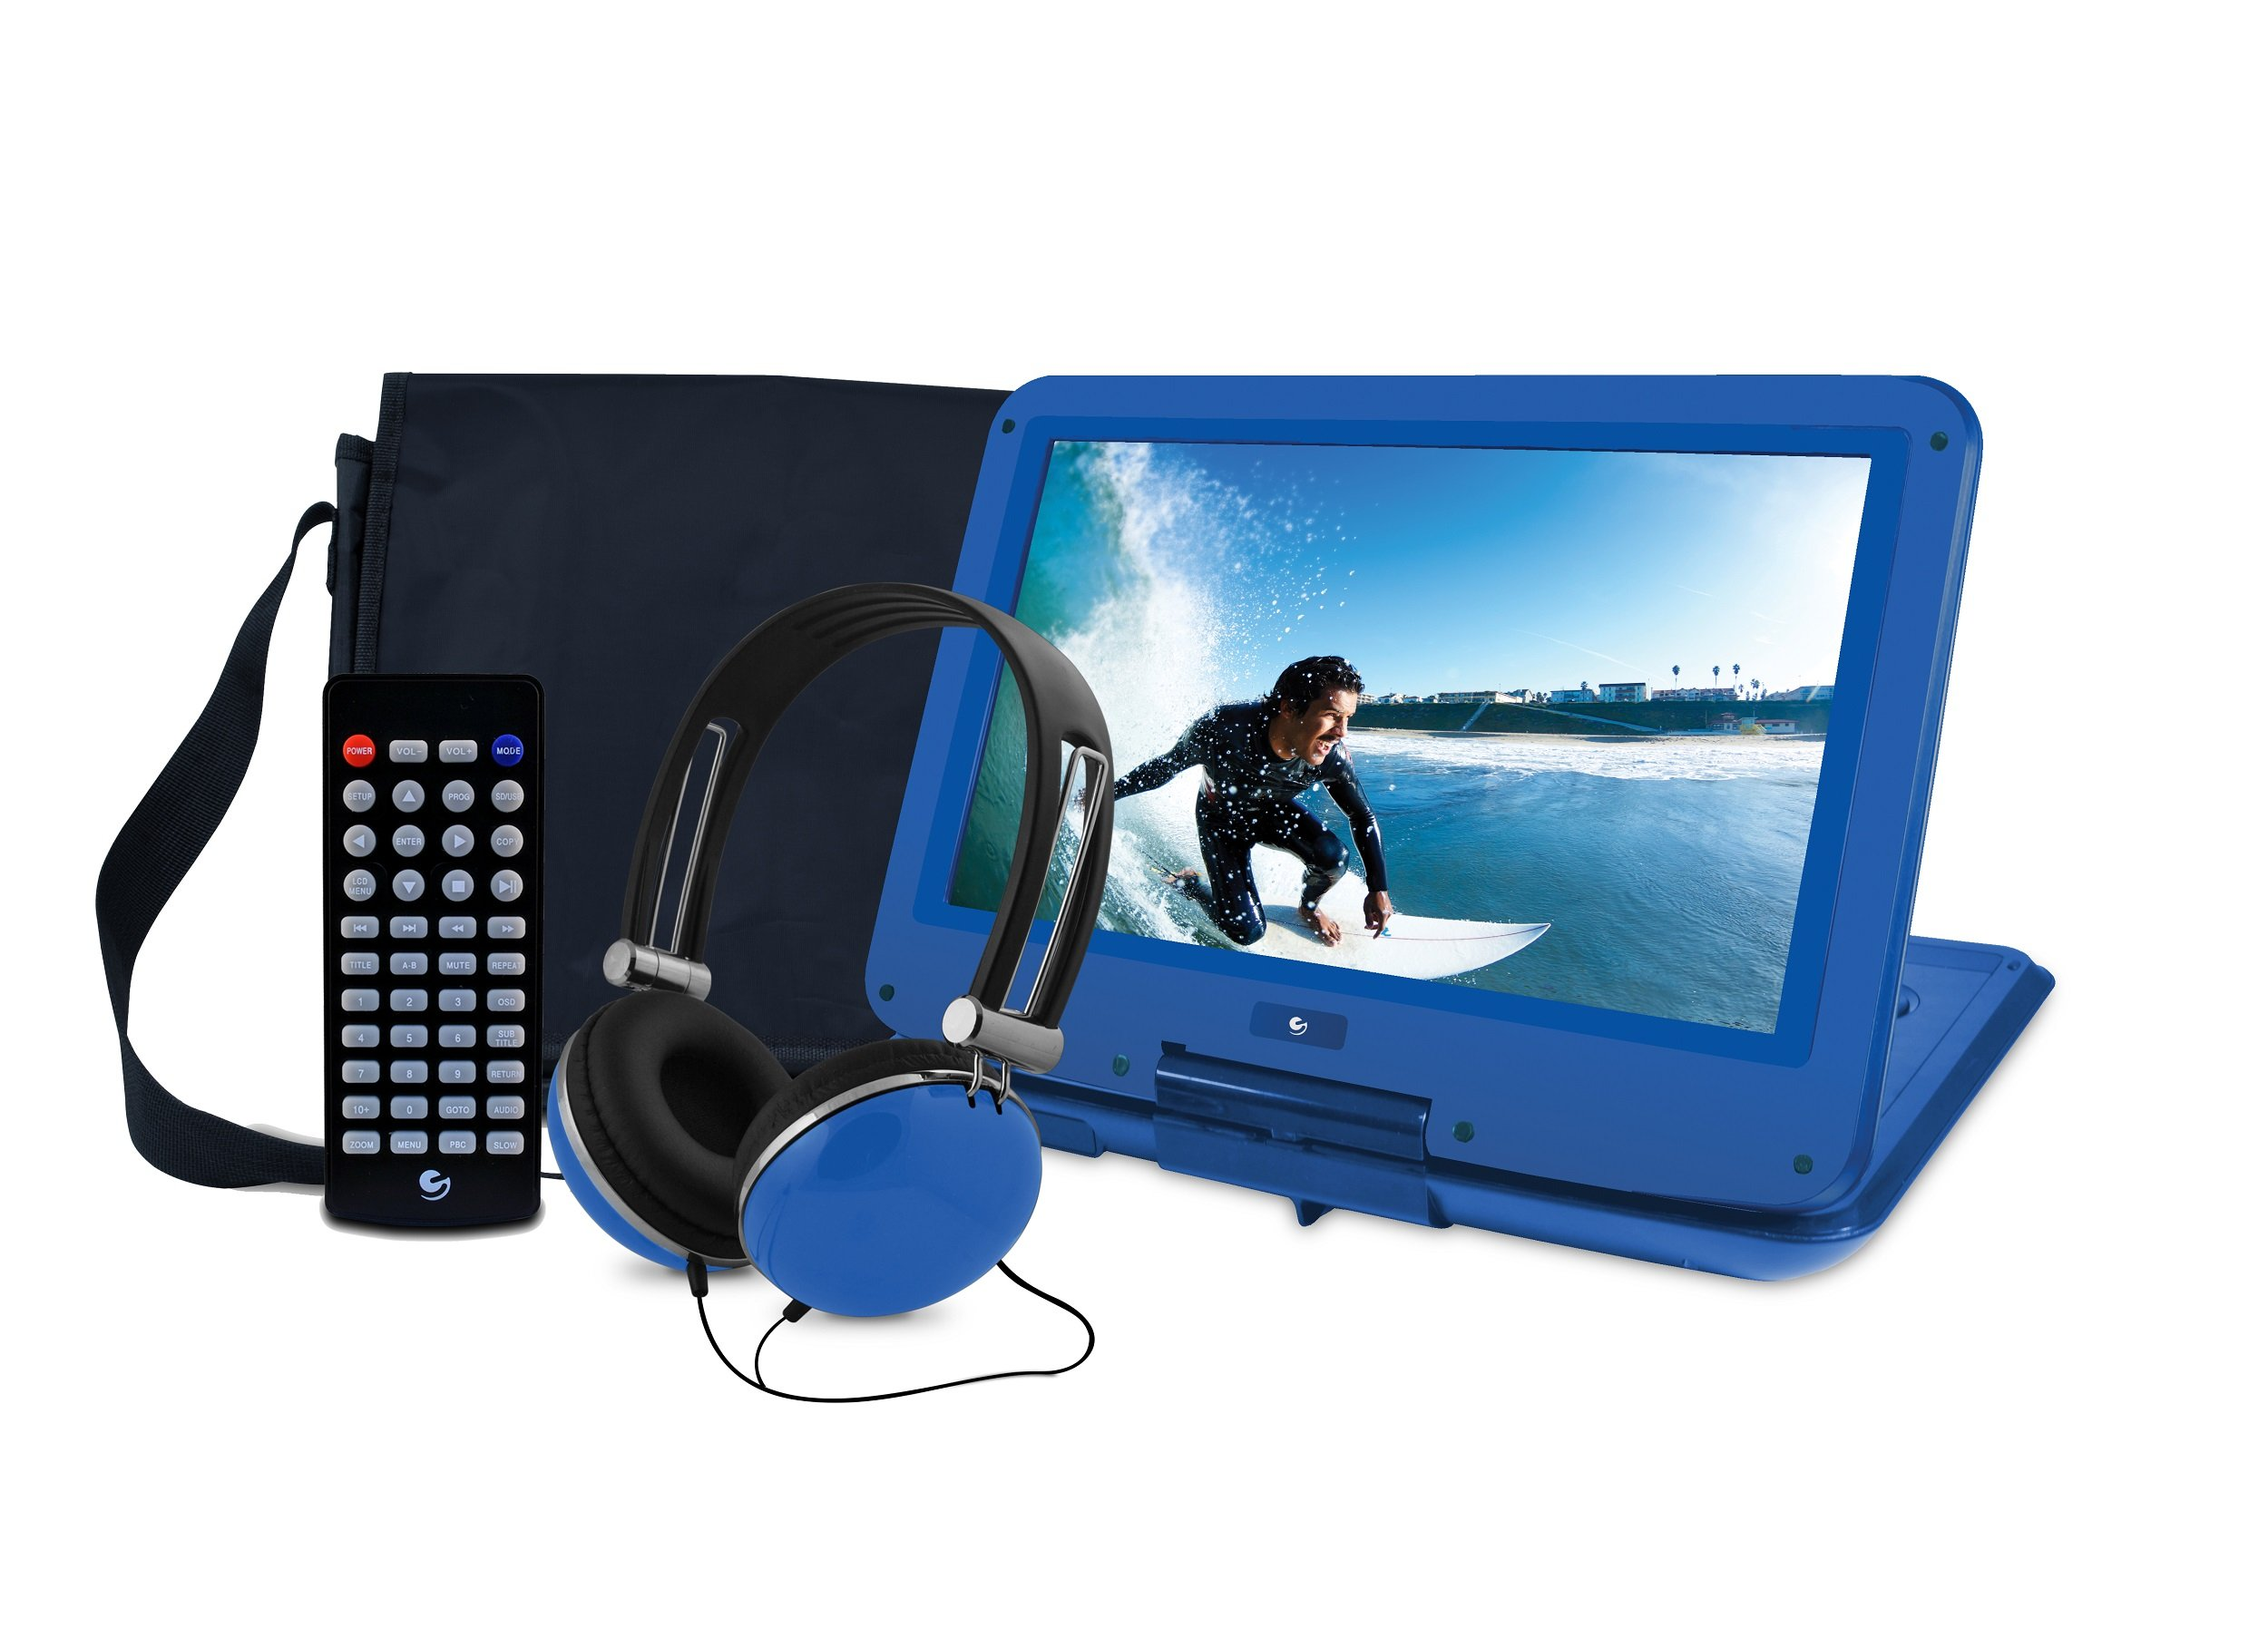 Ematic Portable DVD Player with 12-inch LCD Swivel Screen, Travel Bag, Headphones and Remote Control, Blue